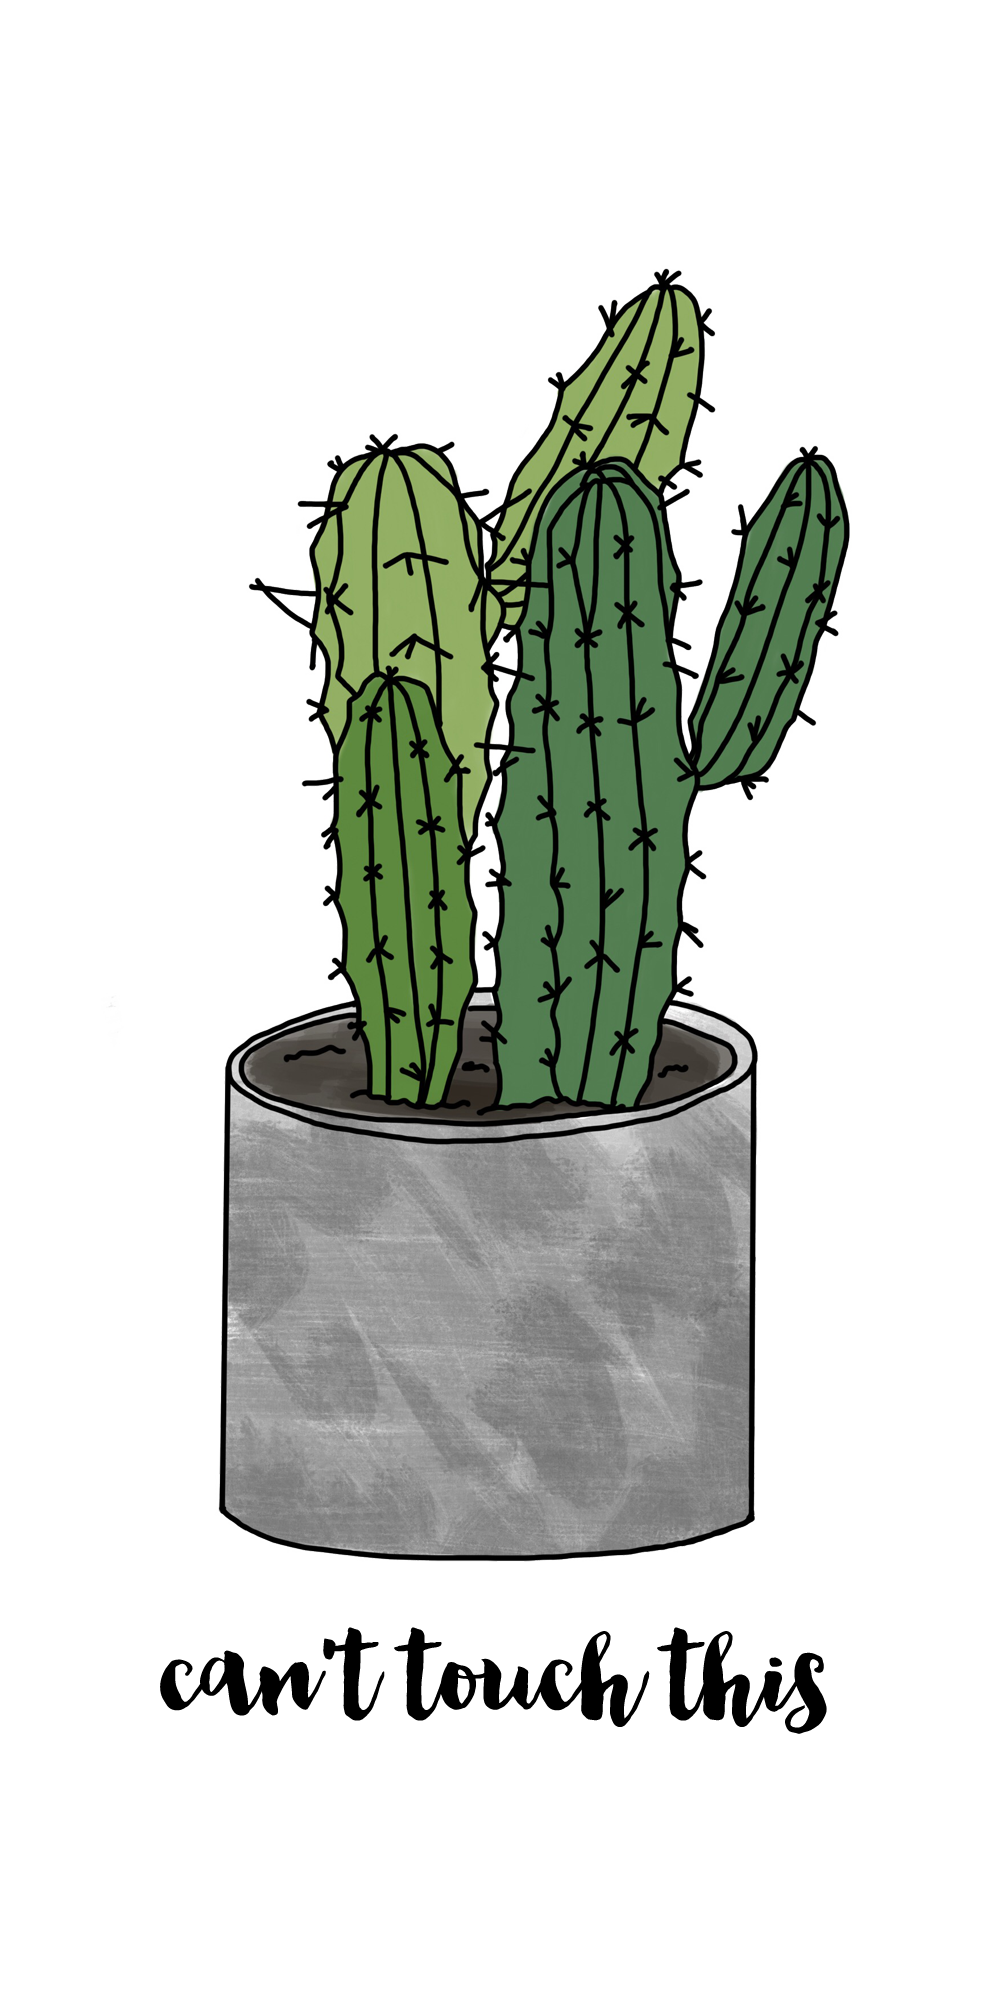 Drawing Cactus Wallpaper Transparent Png Clipart Free Download